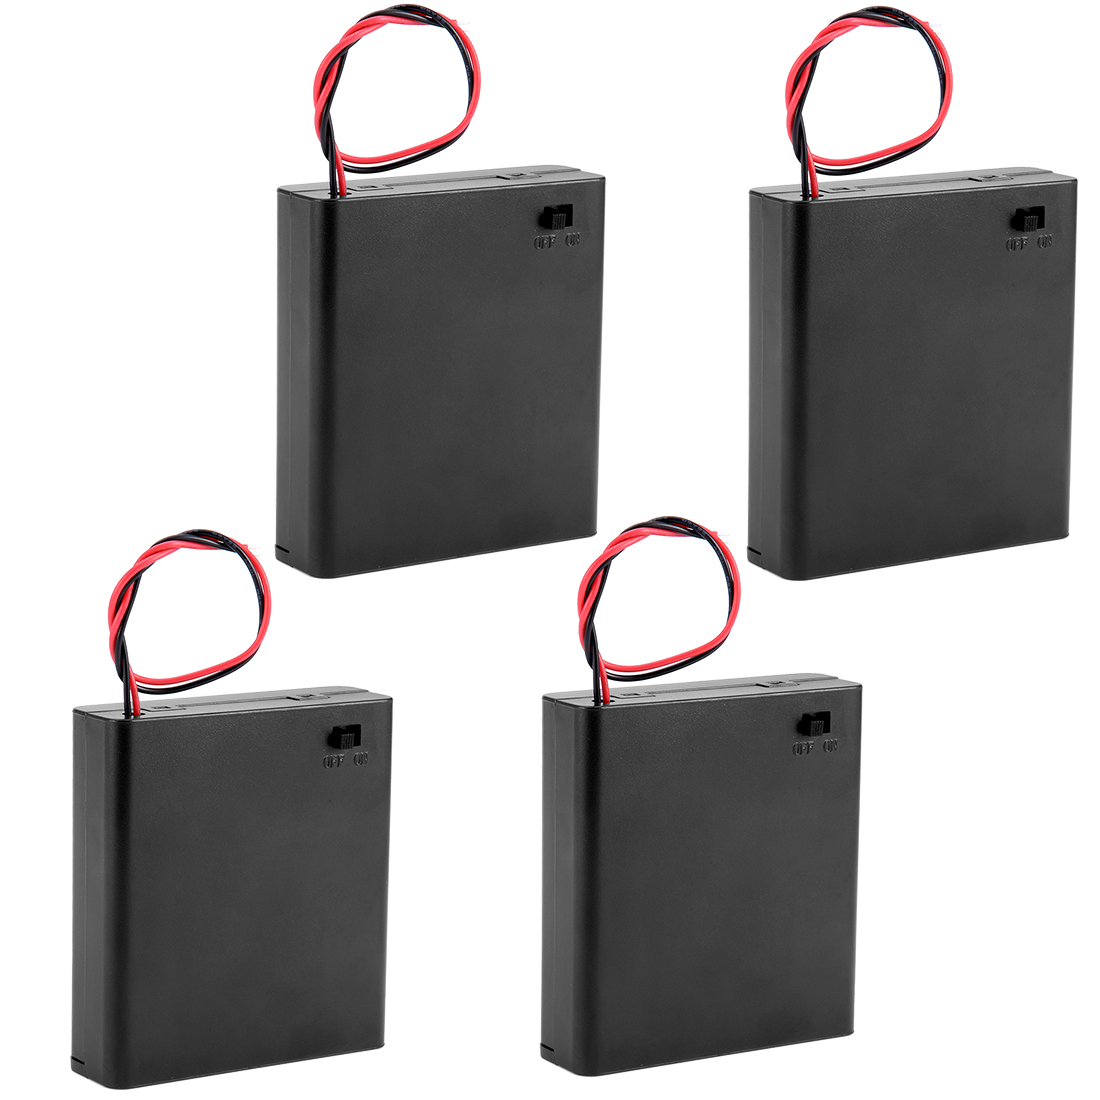 4Pcs Plastic Shell 4 x 1.5V AA Batteries Battery Holder Case Box w Cover